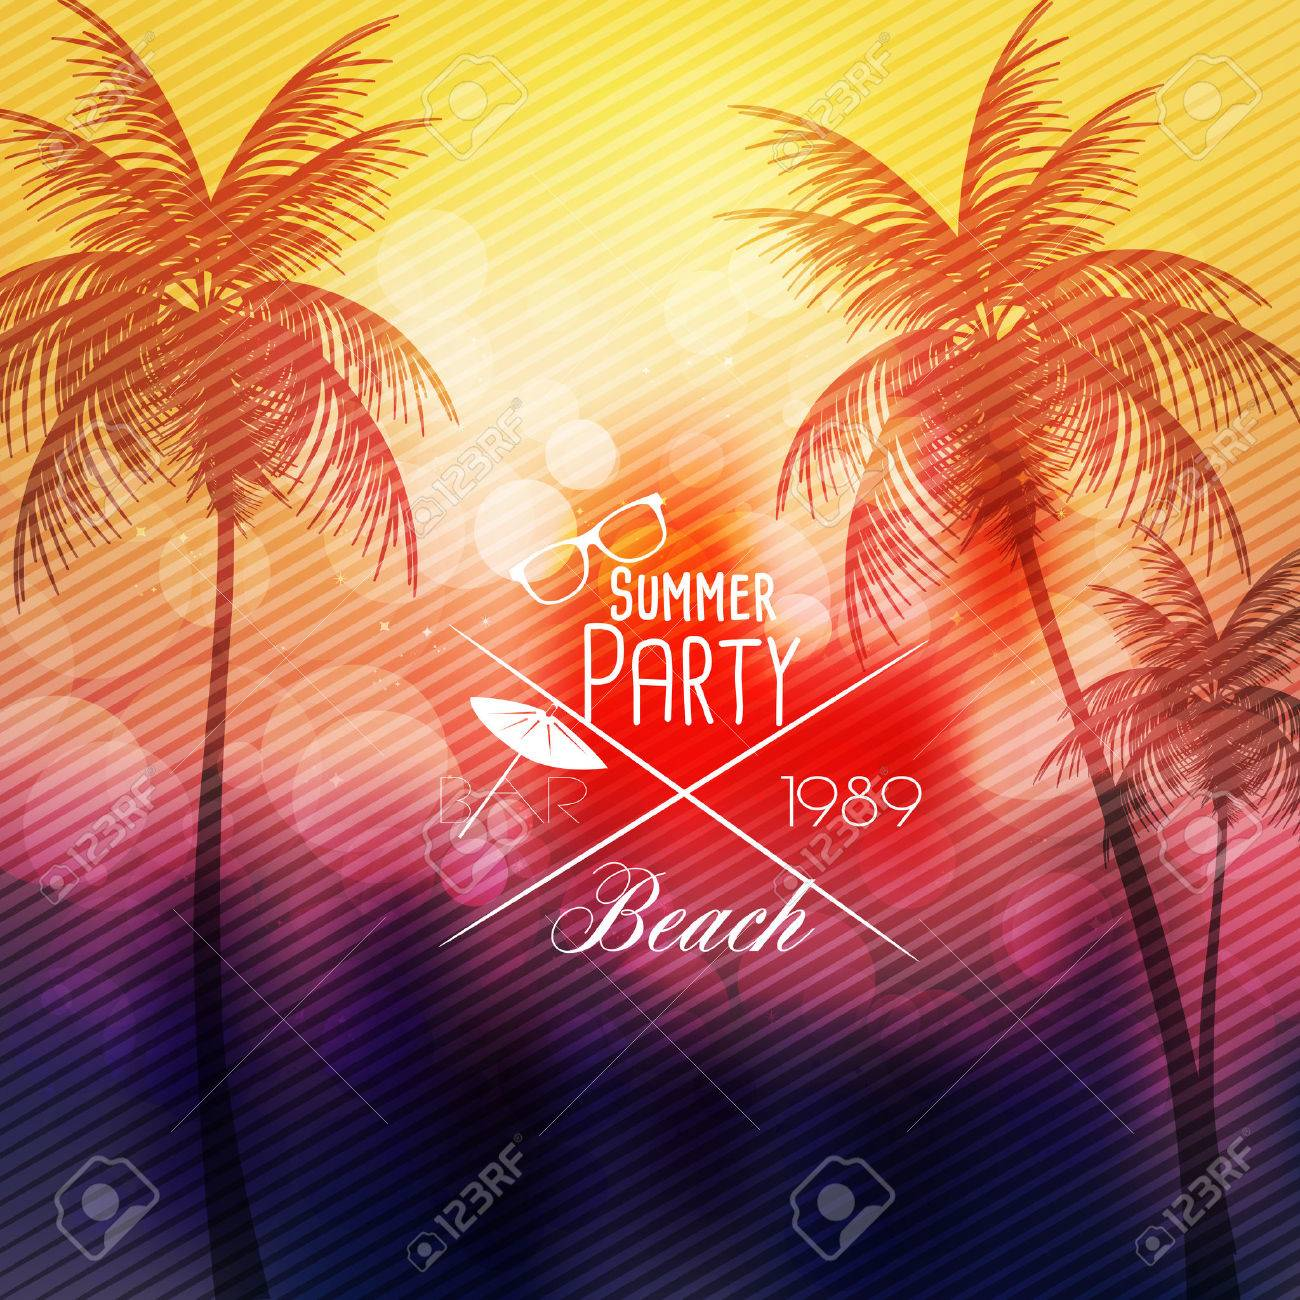 Summer Beach Party Flyer Template - Vector Illustration Royalty Free ...